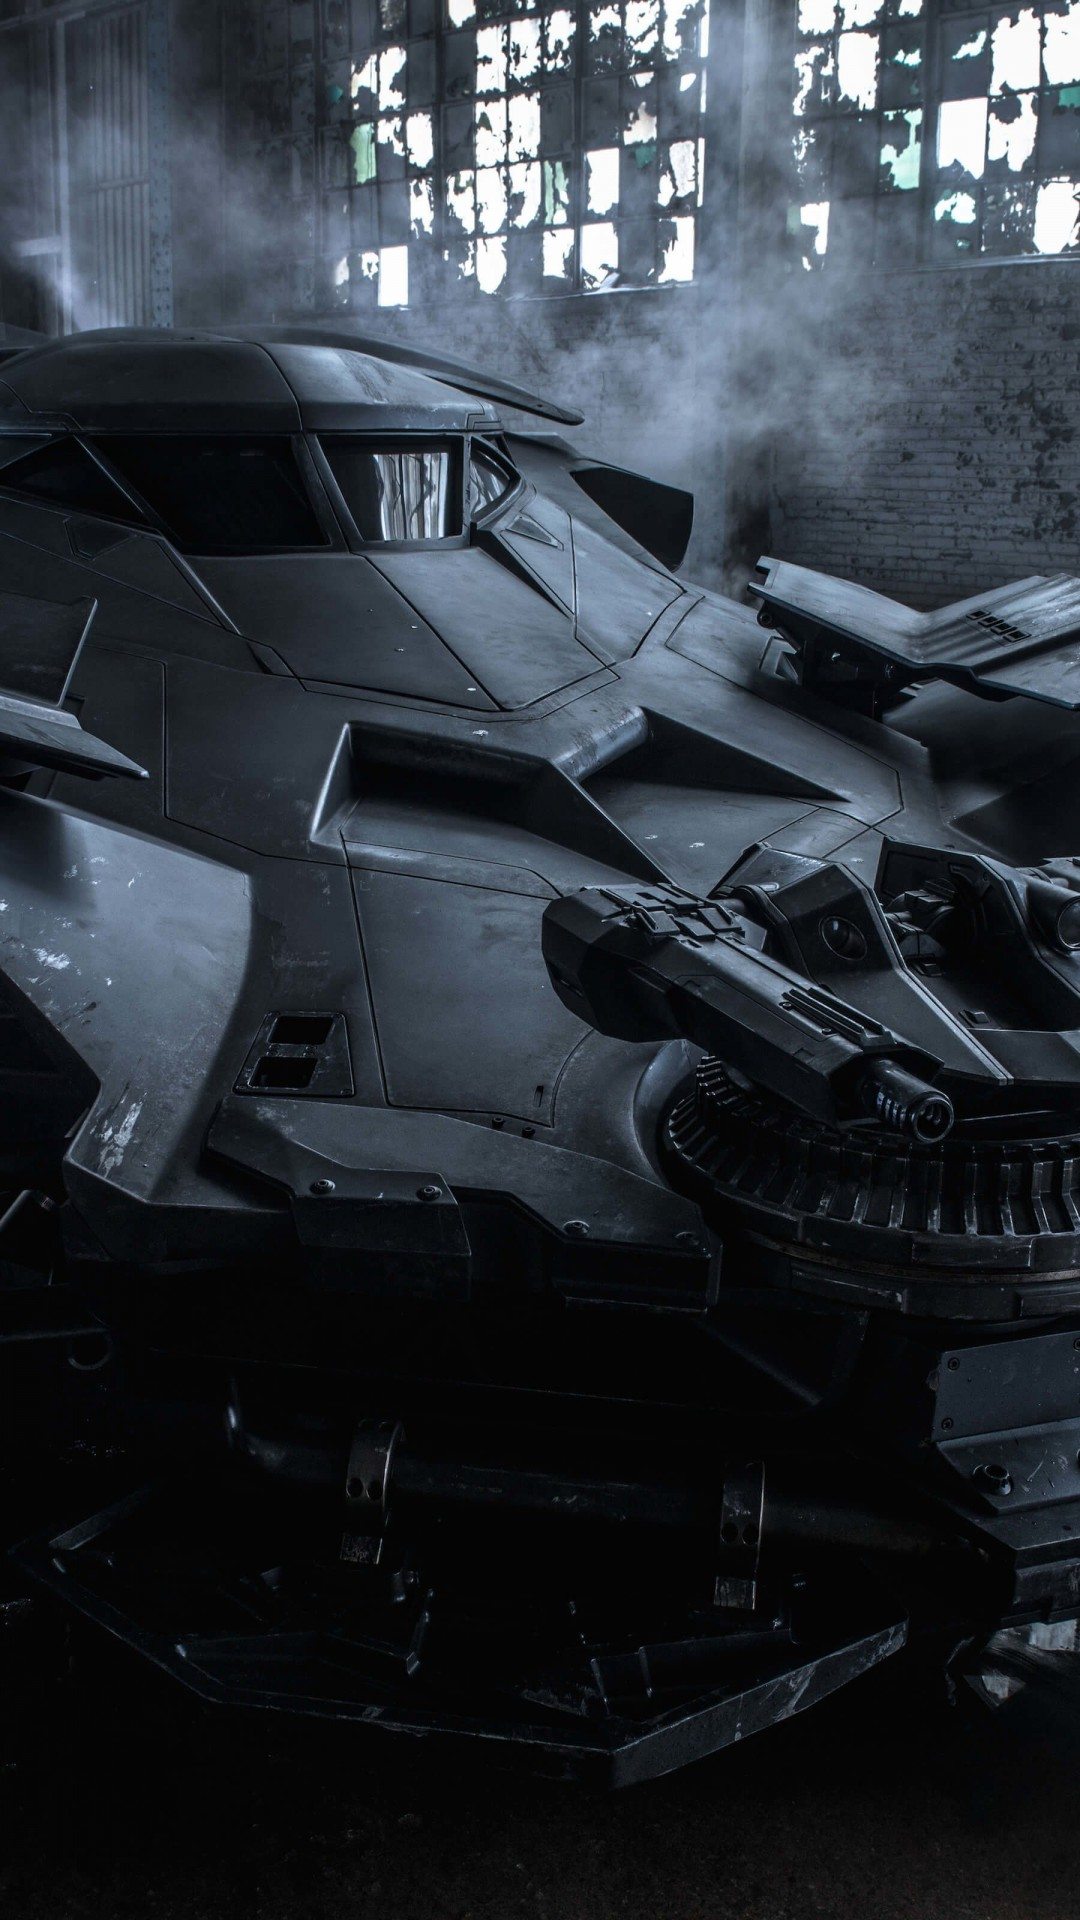 The Batman v Superman Batmobile Wallpaper for SAMSUNG Galaxy S5